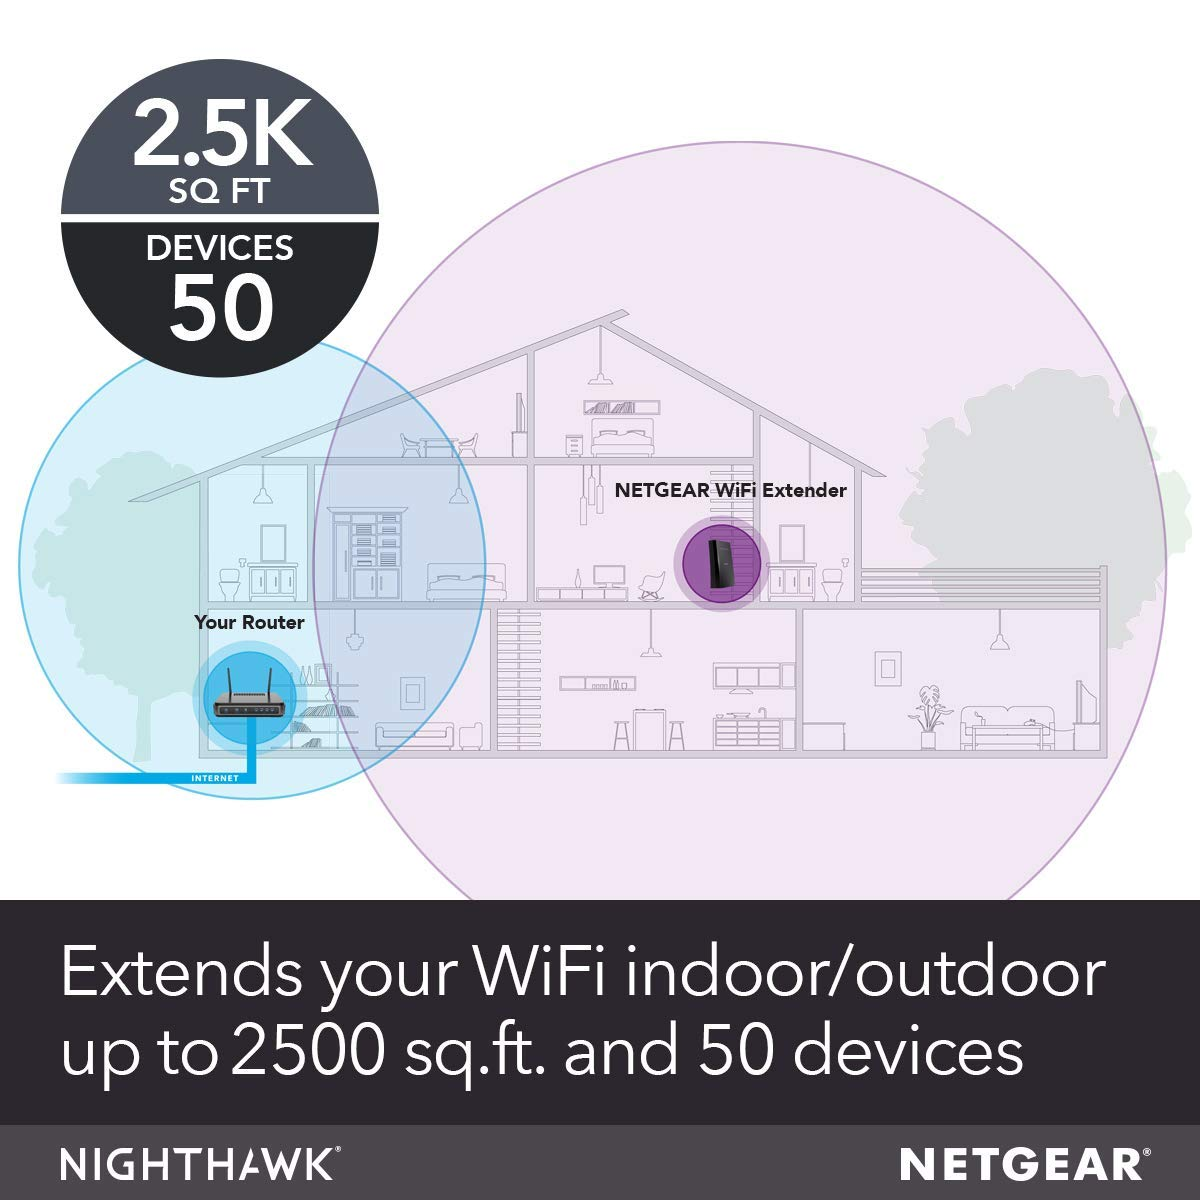 NETGEAR Wi-Fi Mesh Range Extender EX8000 - Coverage up to 2500 sq ft and 50  Devices with AC3000 Tri-Band Wireless Signal Booster/Repeater (Up to 3000